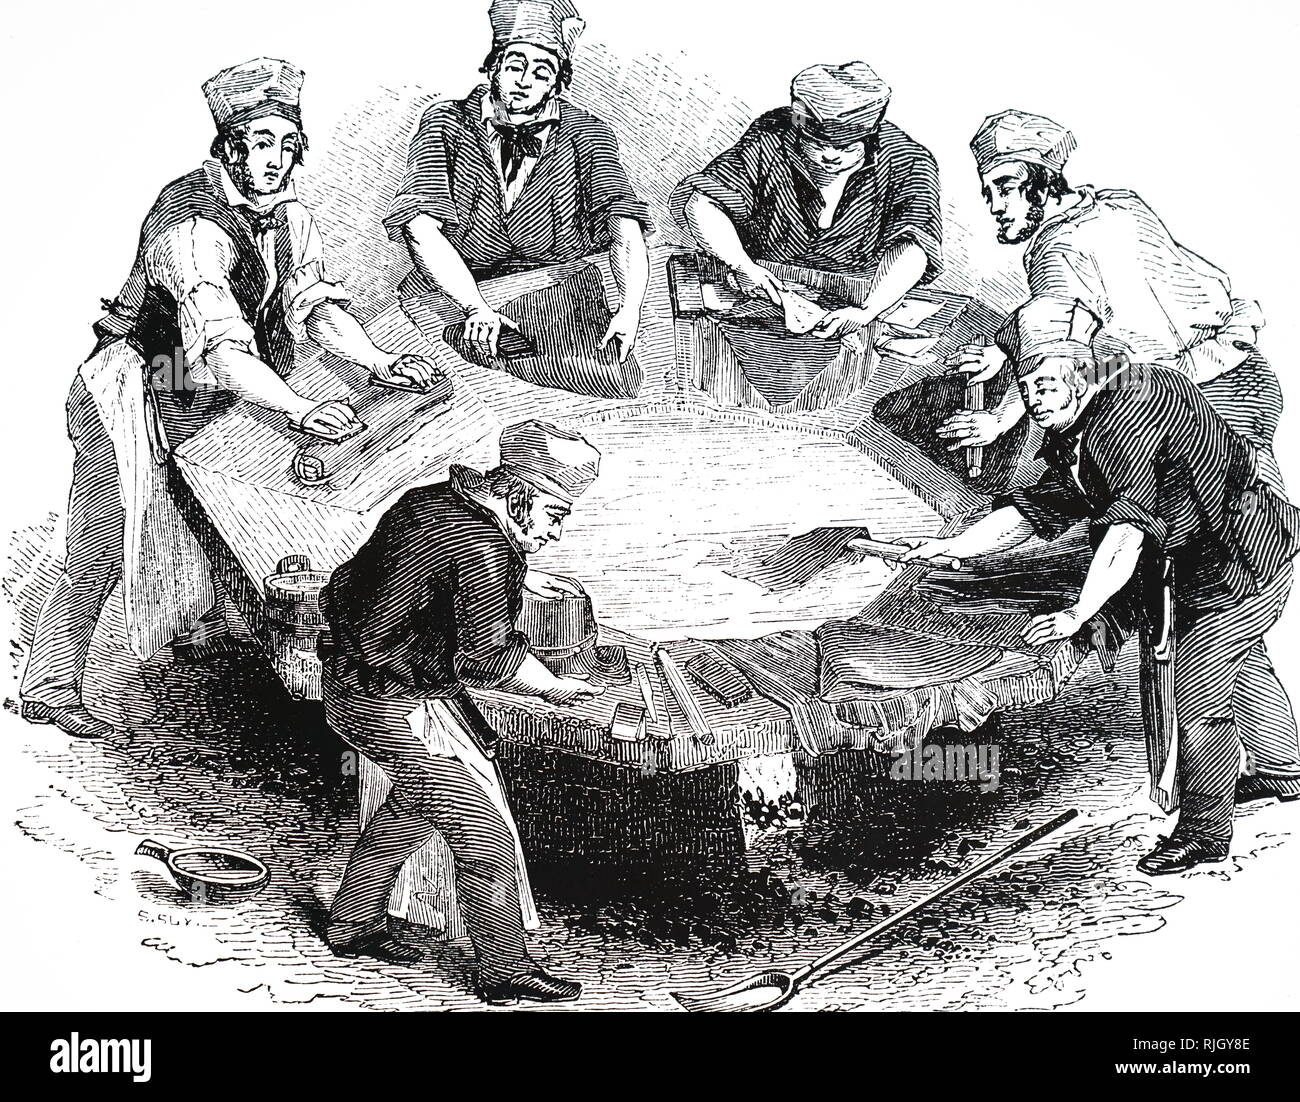 An engraving depicting the manufacturing of beaver hats: 'felting' the body of the hats in the 'kettle'. Mercury was used during the manufacture, and many hatters suffered from the uncontrollable shaking typical of mercury poisoning. Dated 19th century - Stock Image